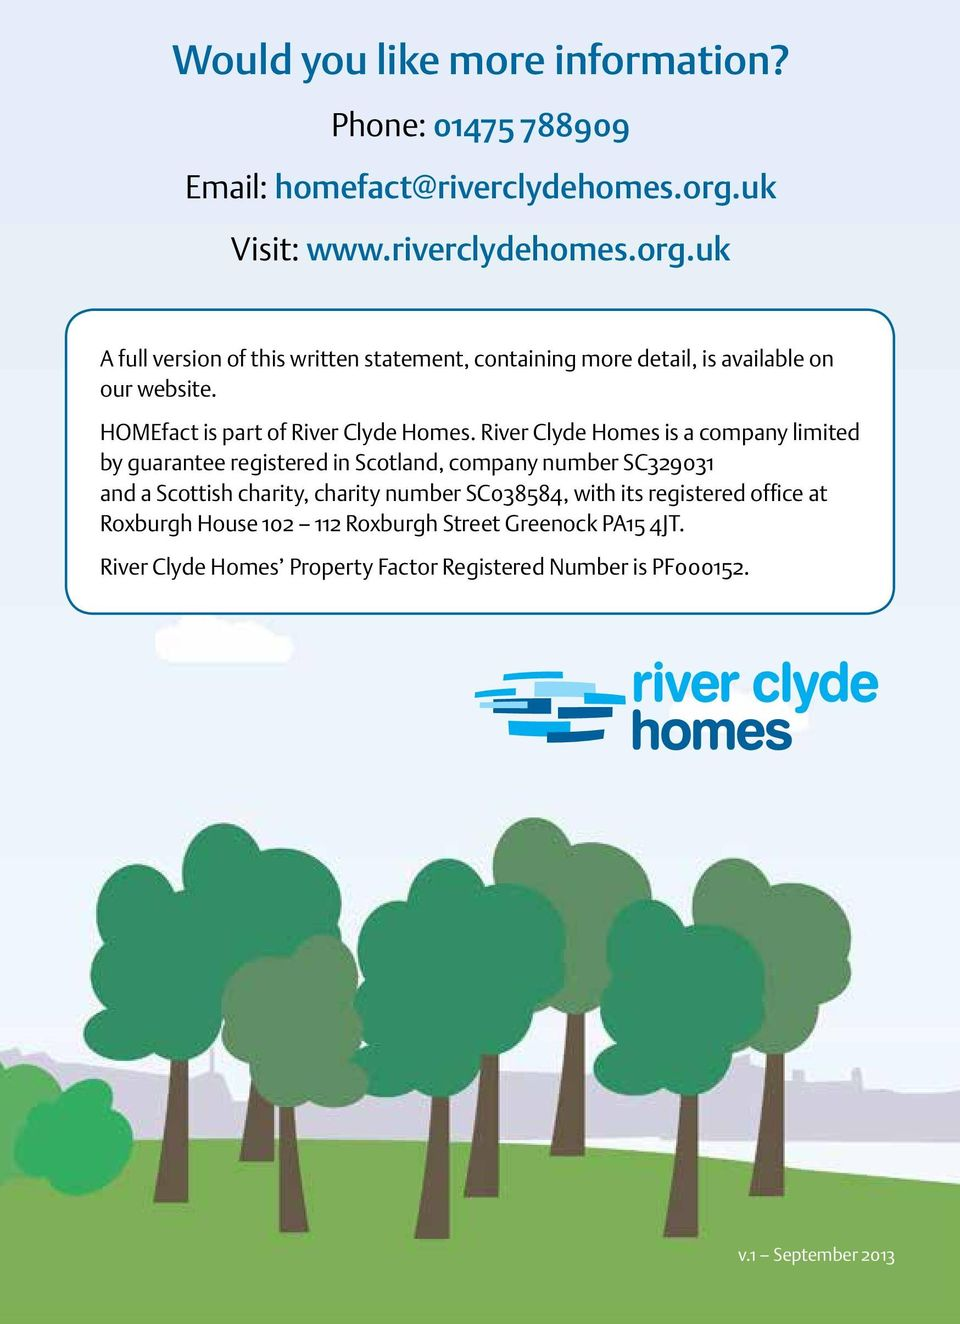 HOMEfact is part of River Clyde Homes.